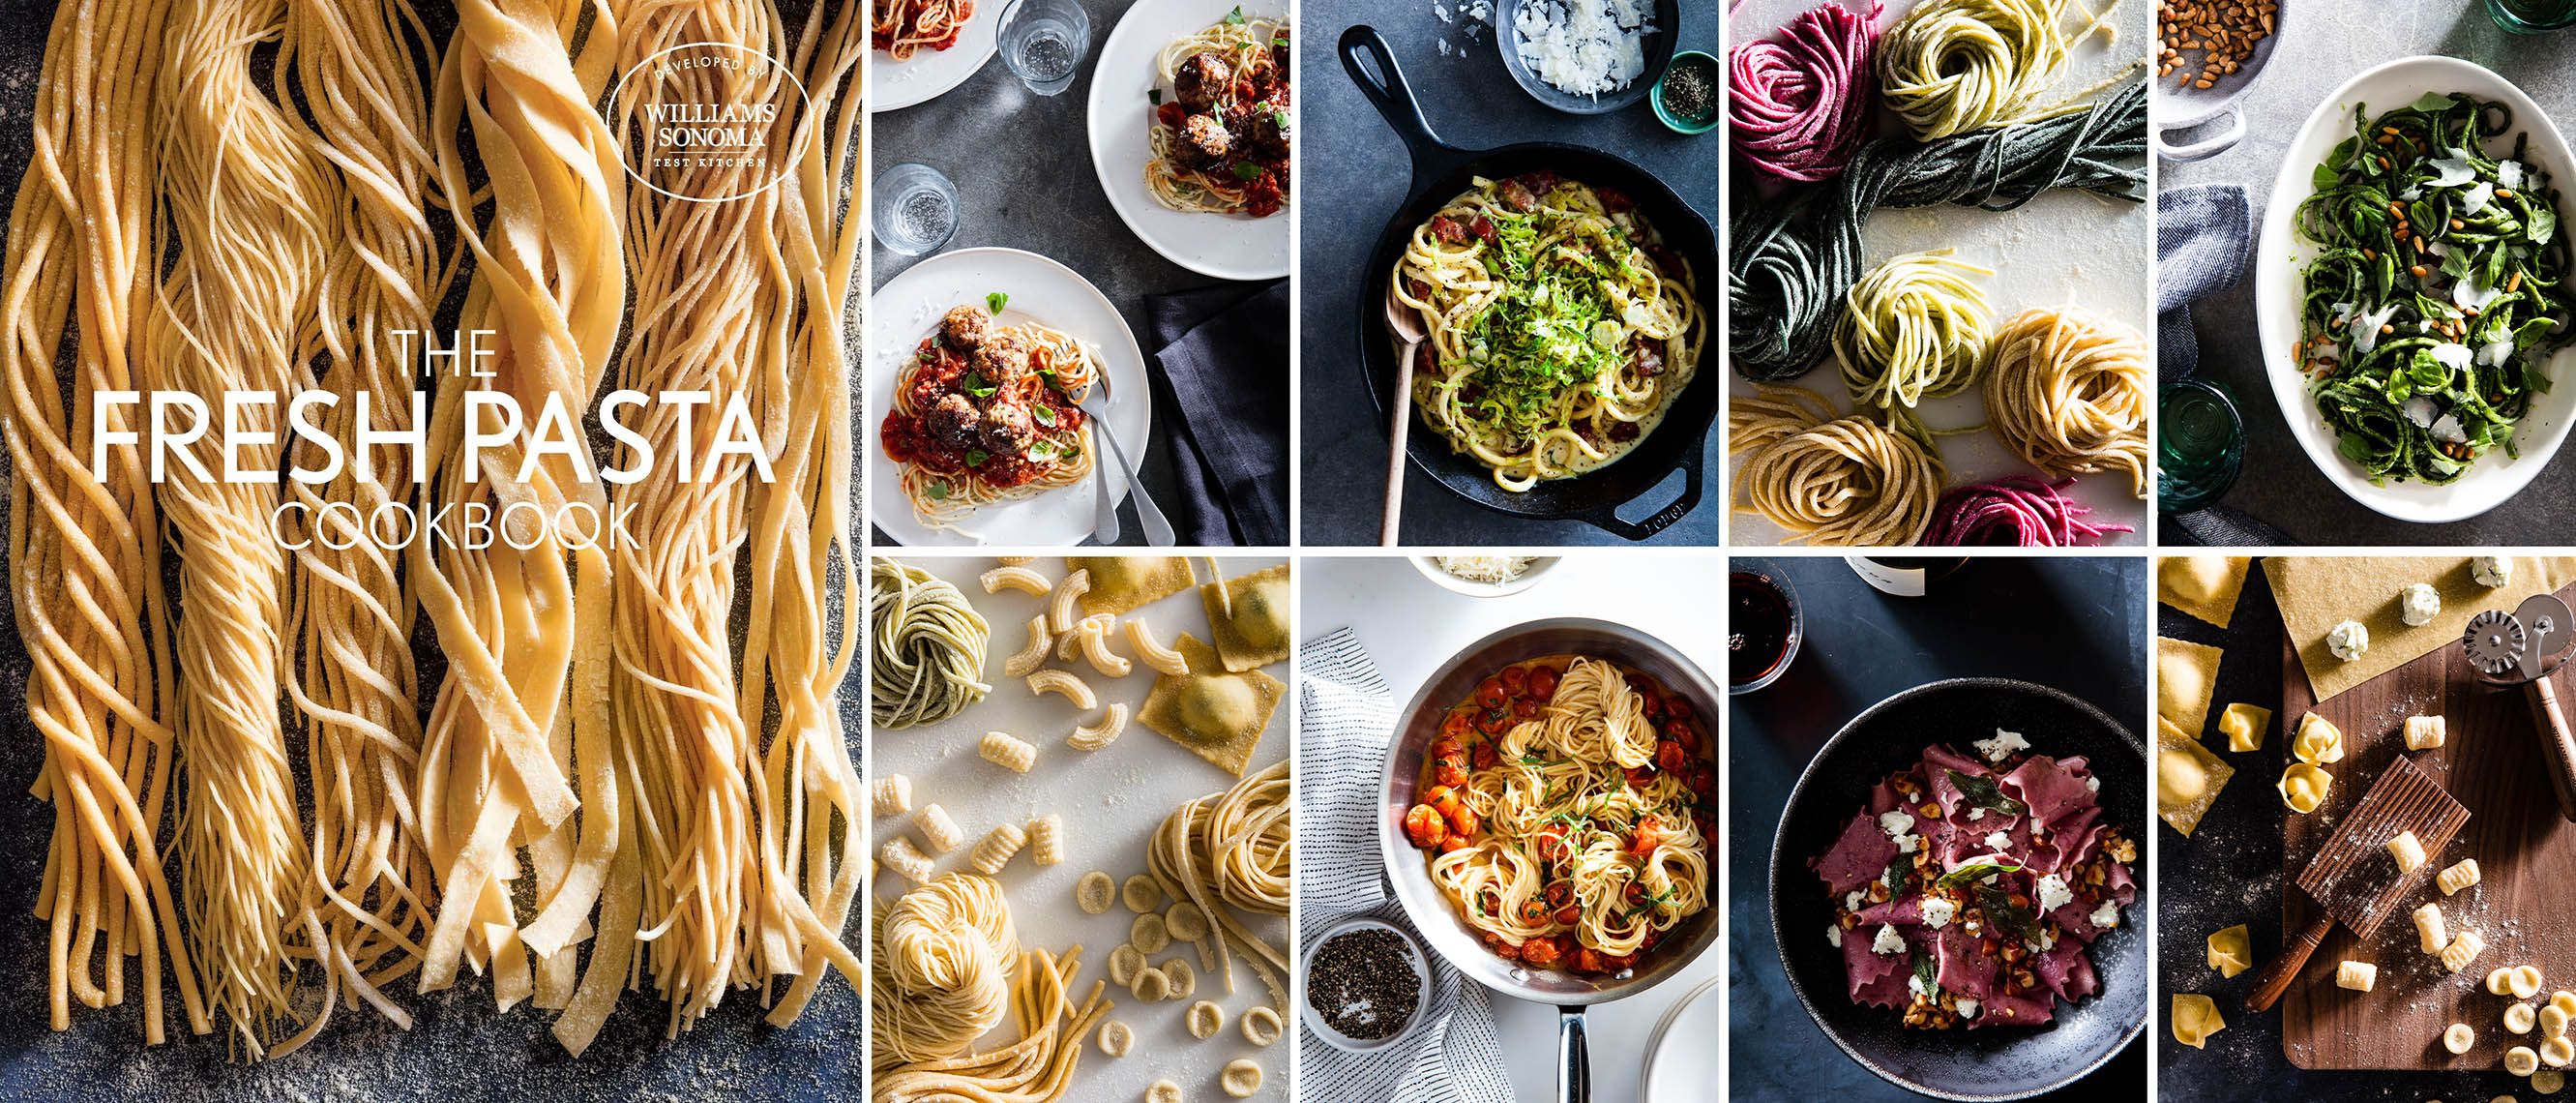 WSTK_PastaCookbook